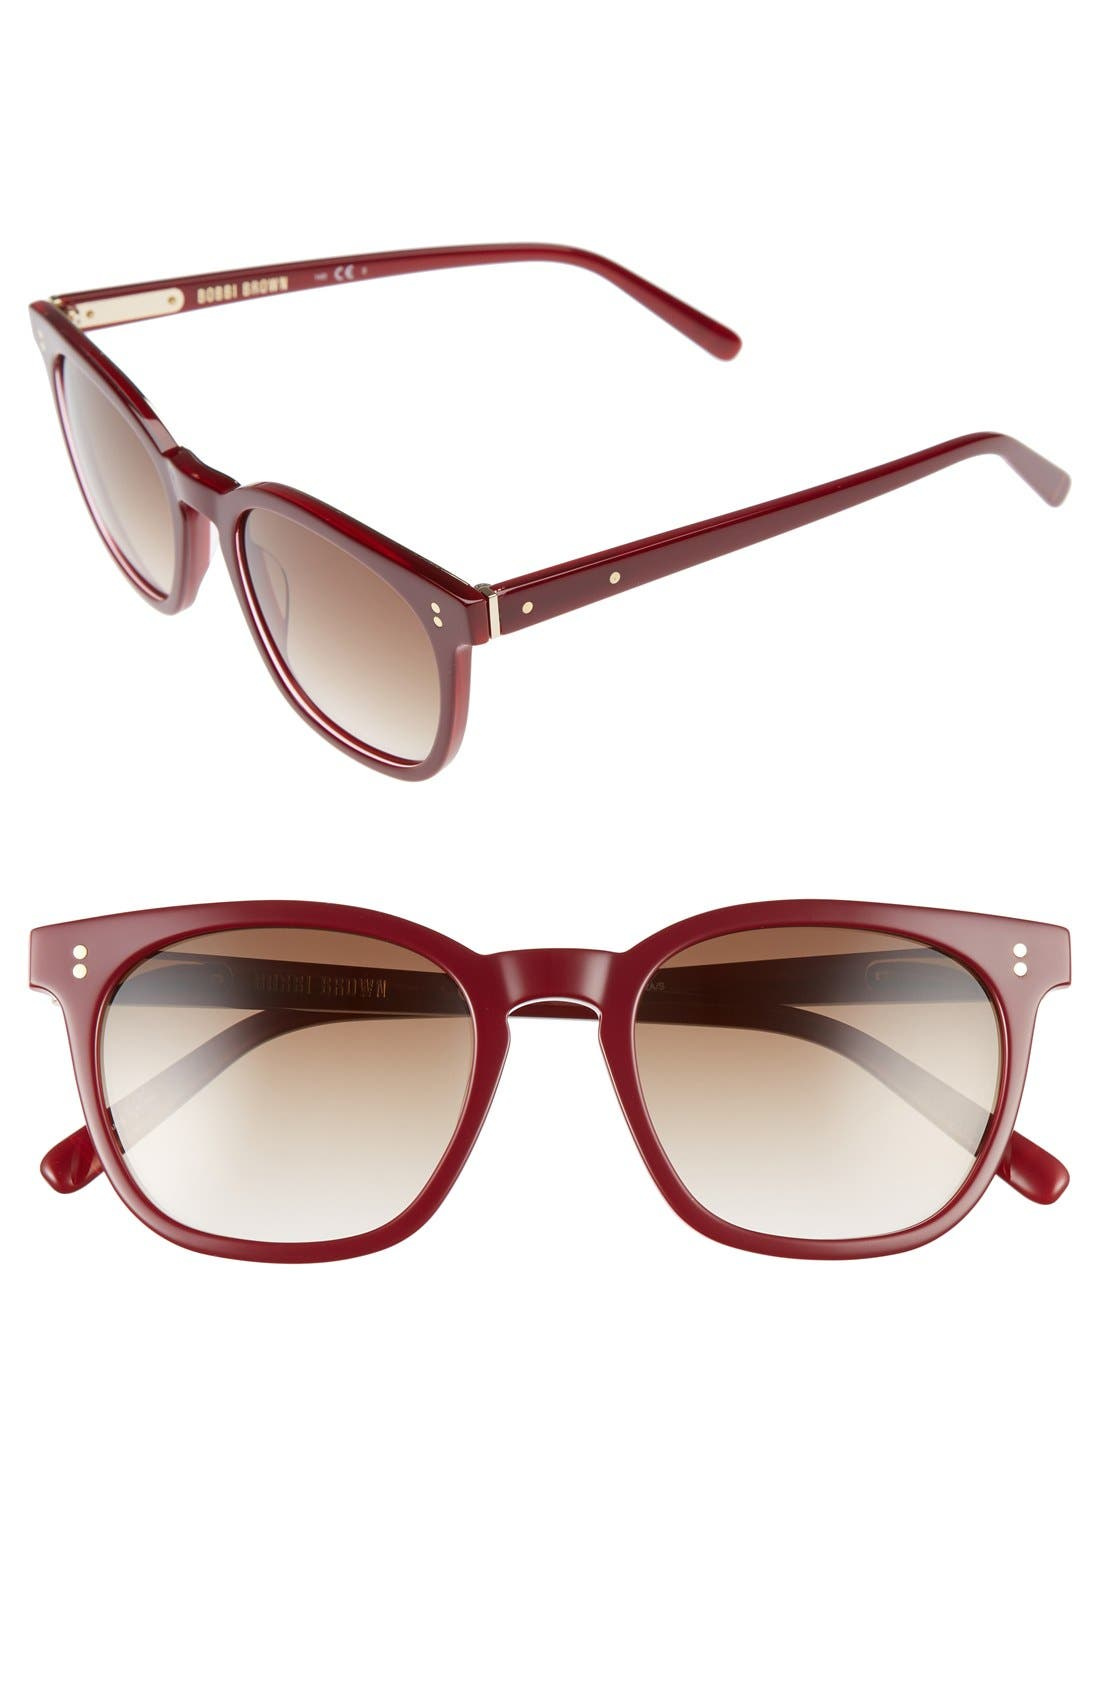 Bobbi Brown The Cassandra 50mm Sunglasses